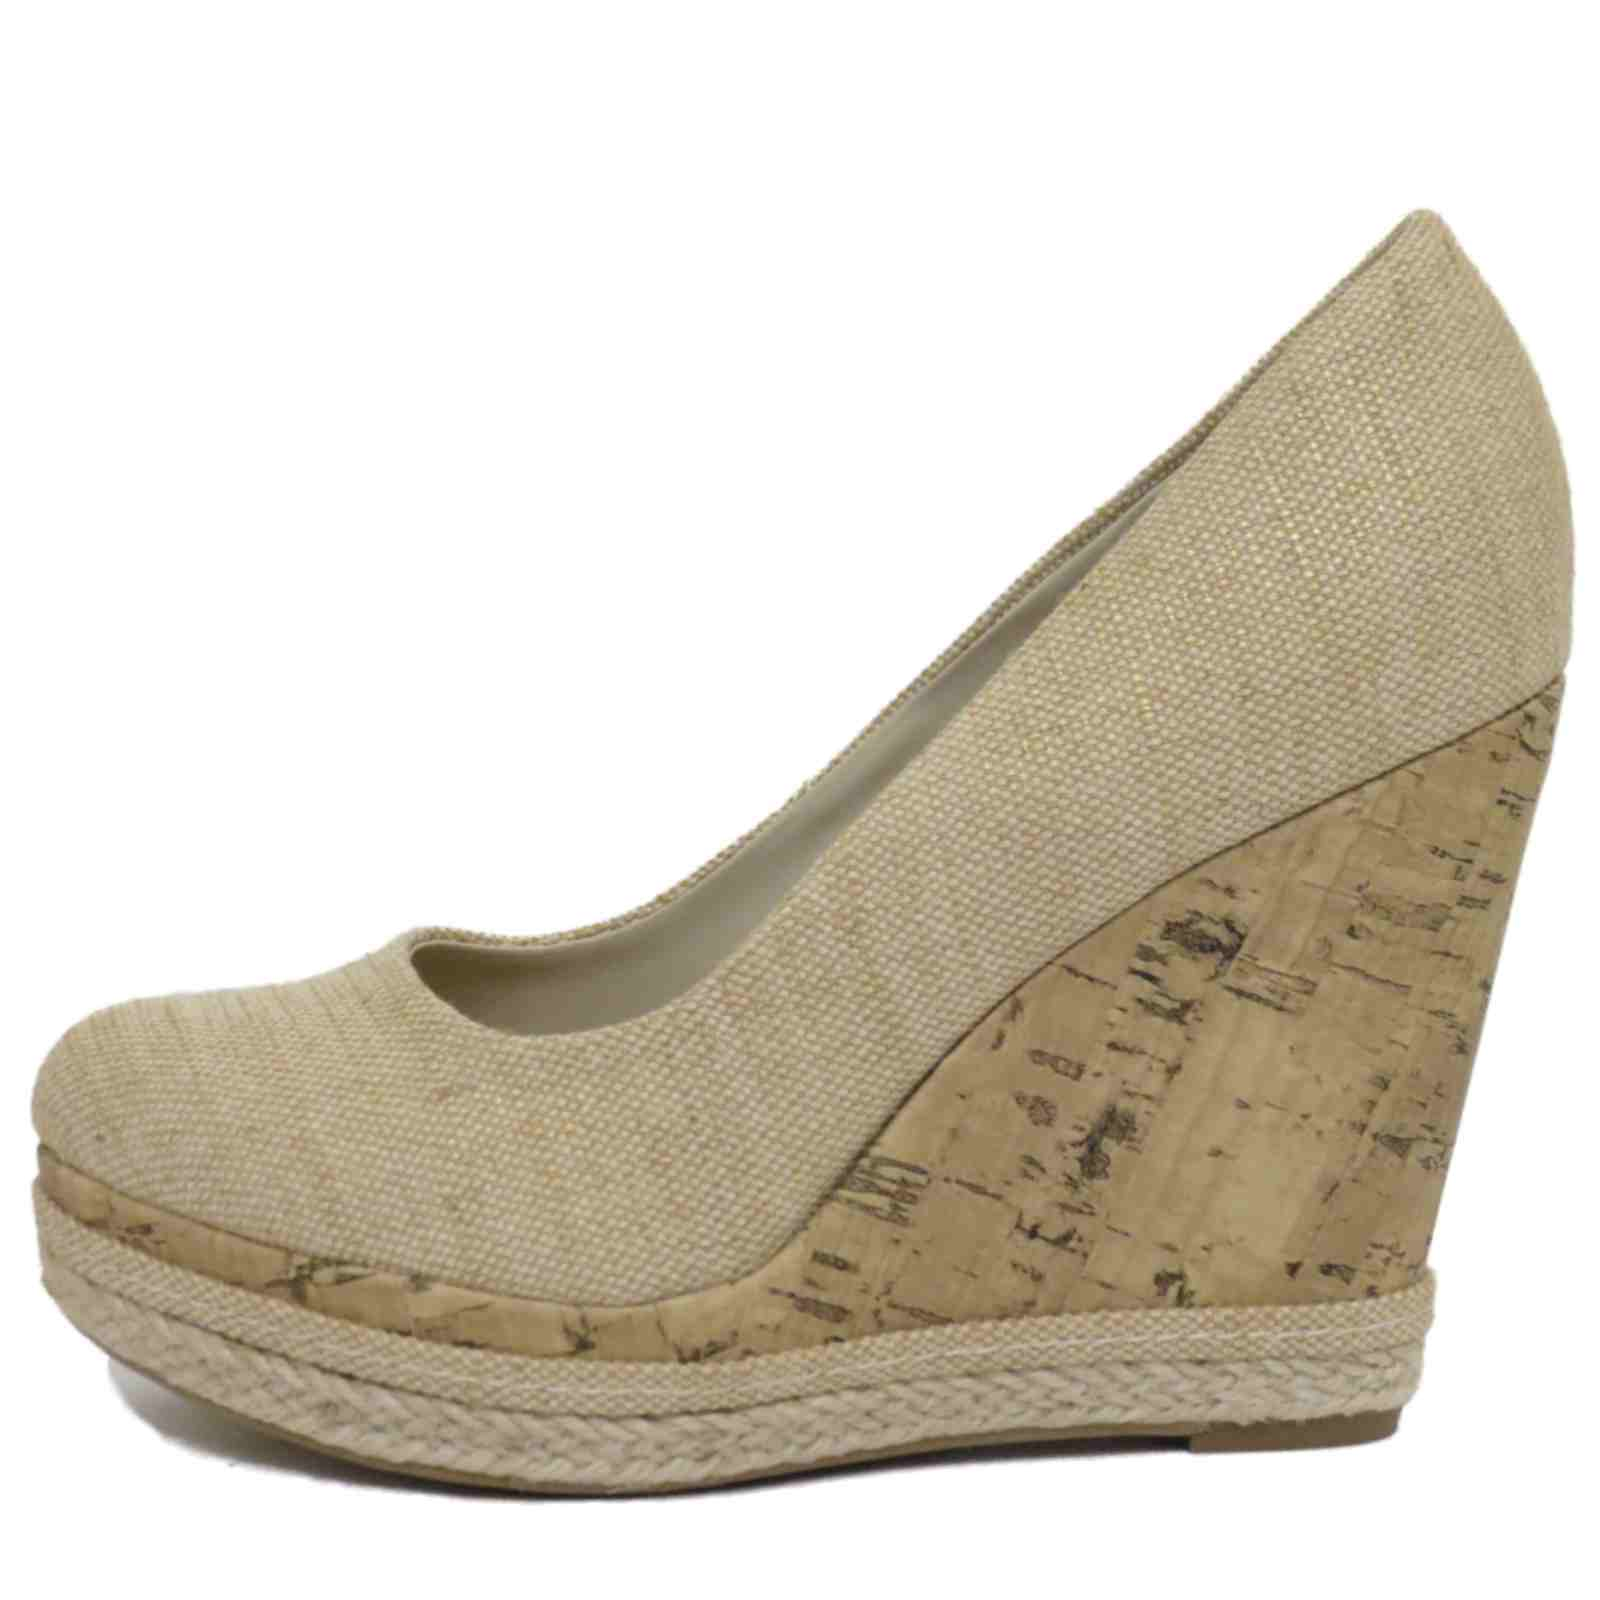 Find Court shoes, Wedge from the Womens department at Debenhams. Shop a wide range of Shoes products and more at our online shop today.